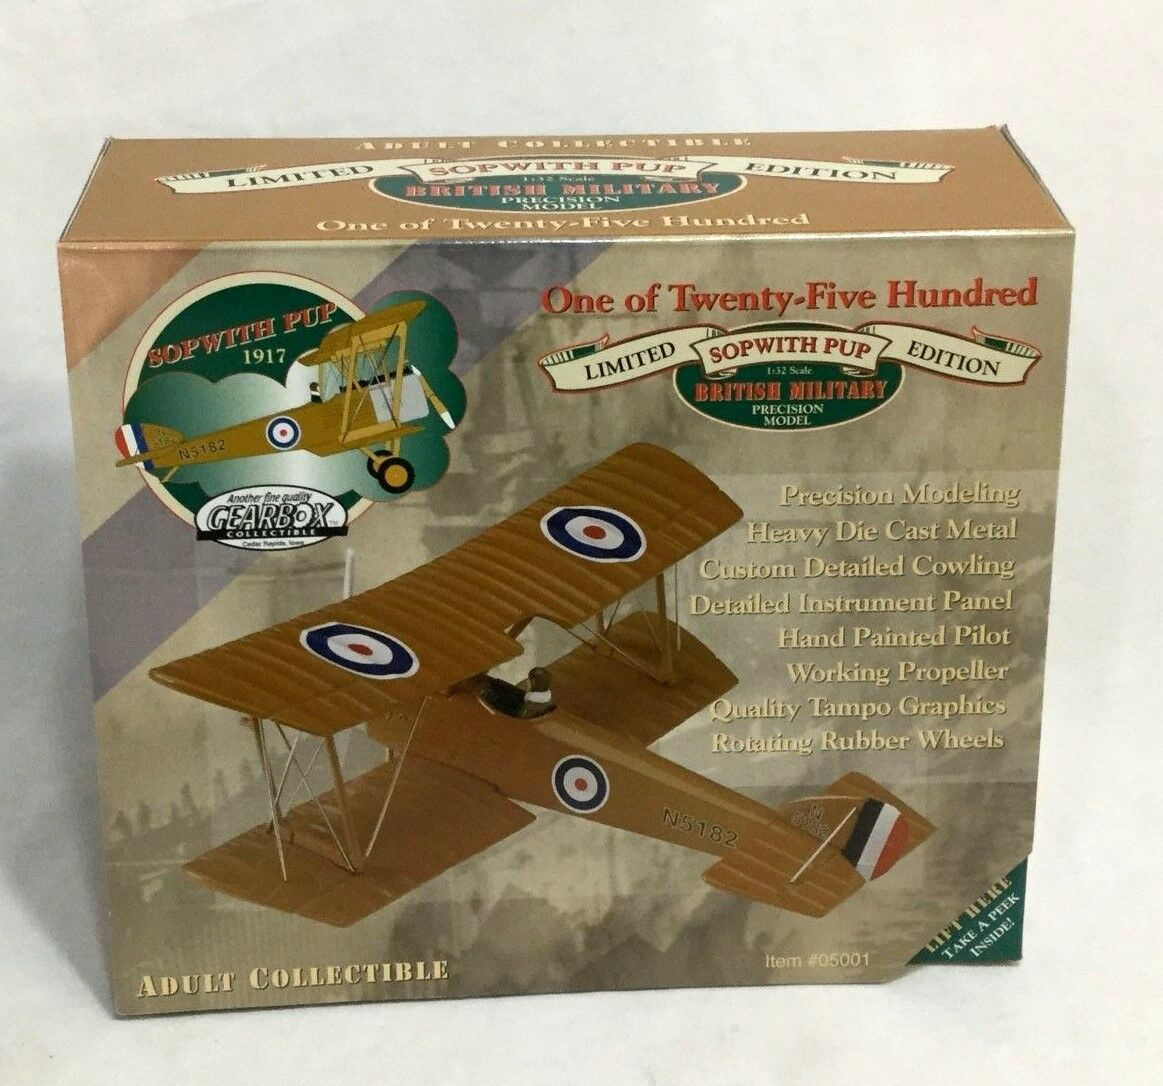 NEW 1997 Gearbox WWI British Army 1917 Sopwith Pup Diecast Bi-Plane 1 32 Scale